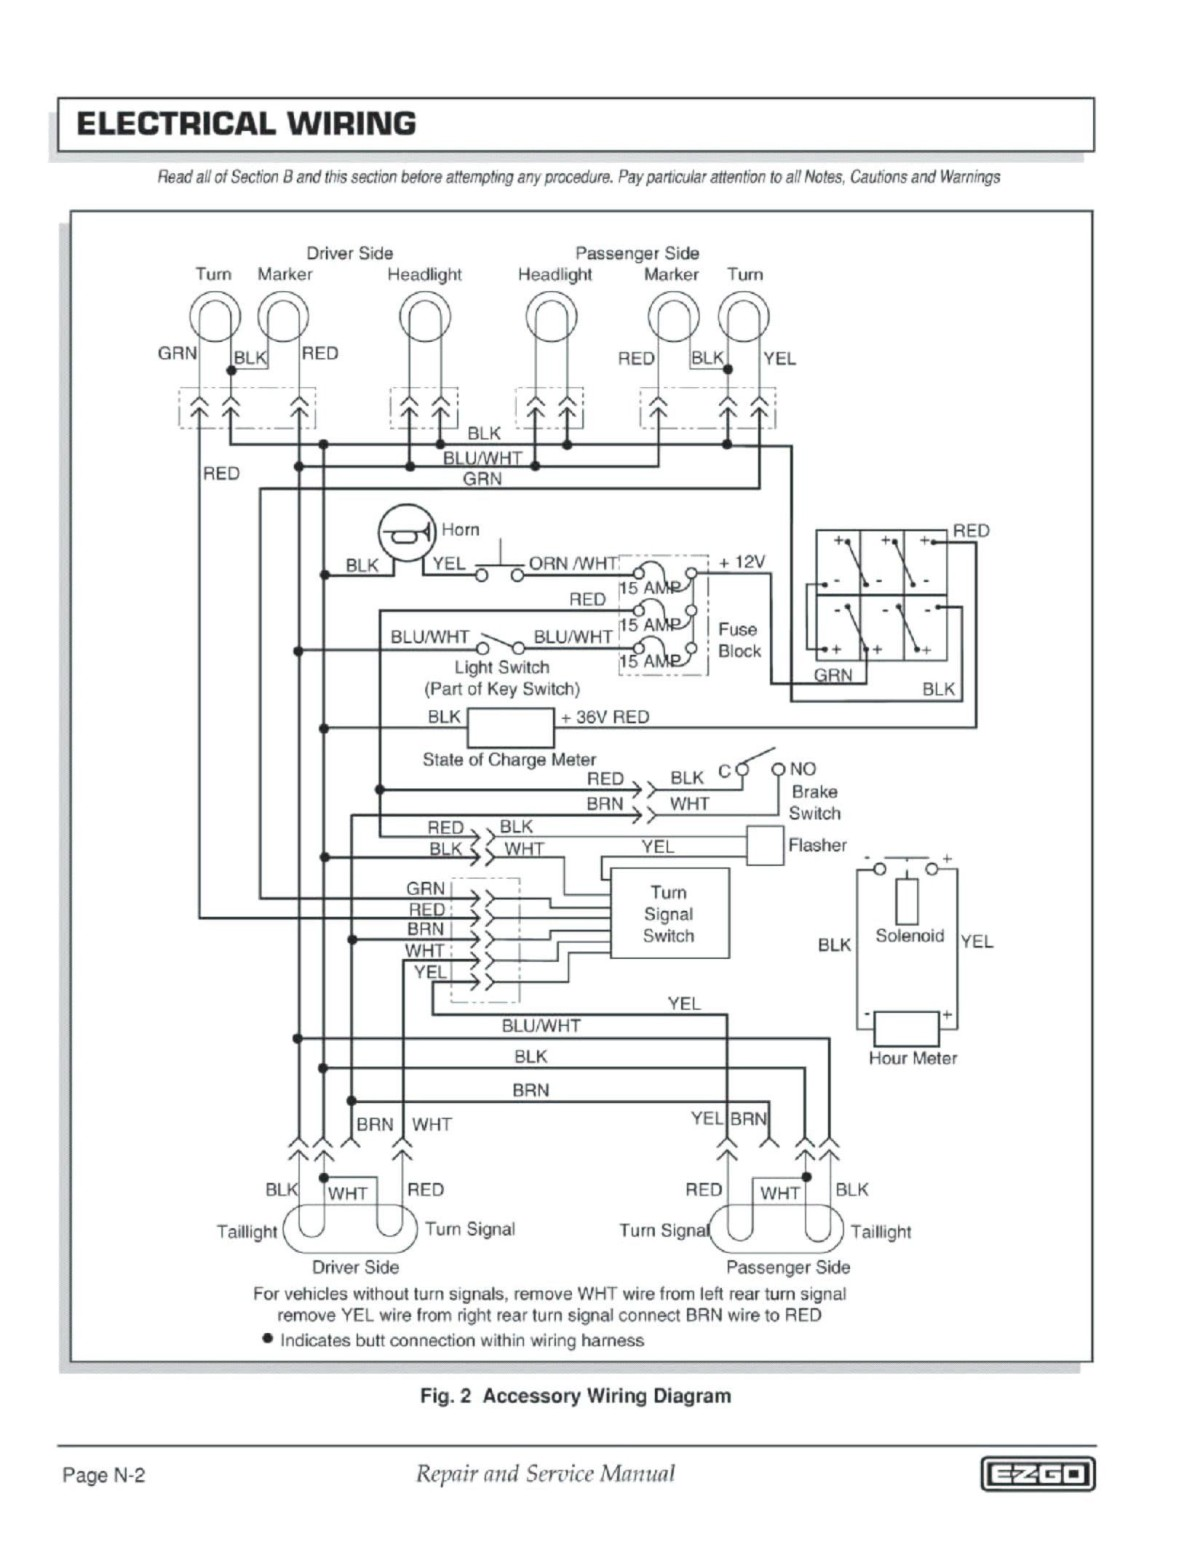 Motorcycle Wiring Diagram Schematic